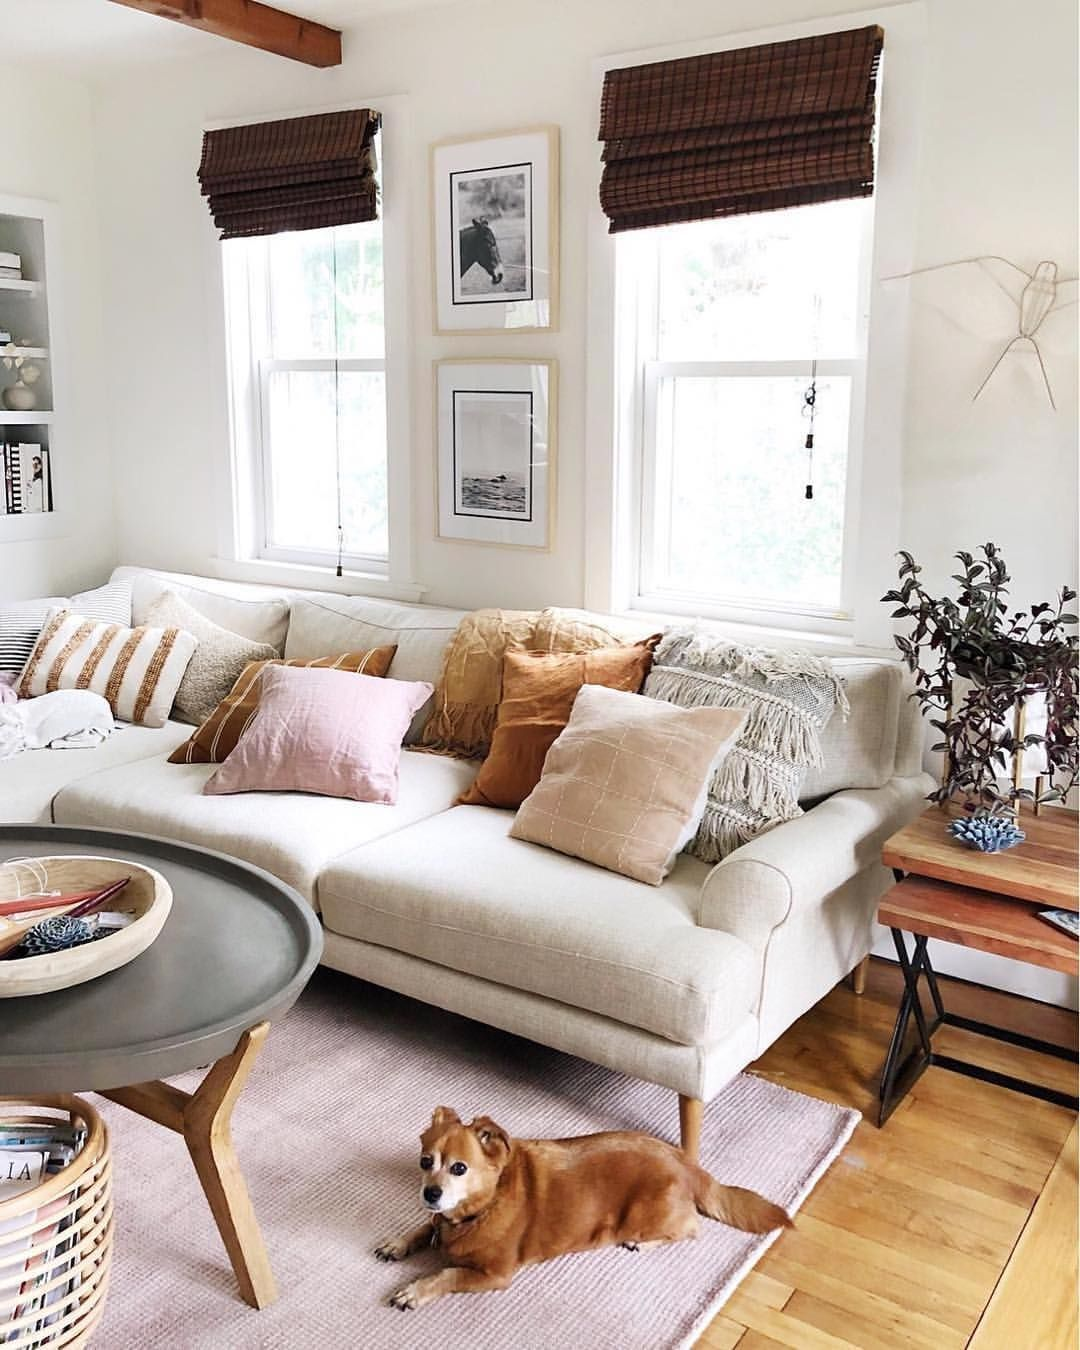 Small Eclectic Living Room Decorating Ideas: 6 Amazing Small Living Room Ideas